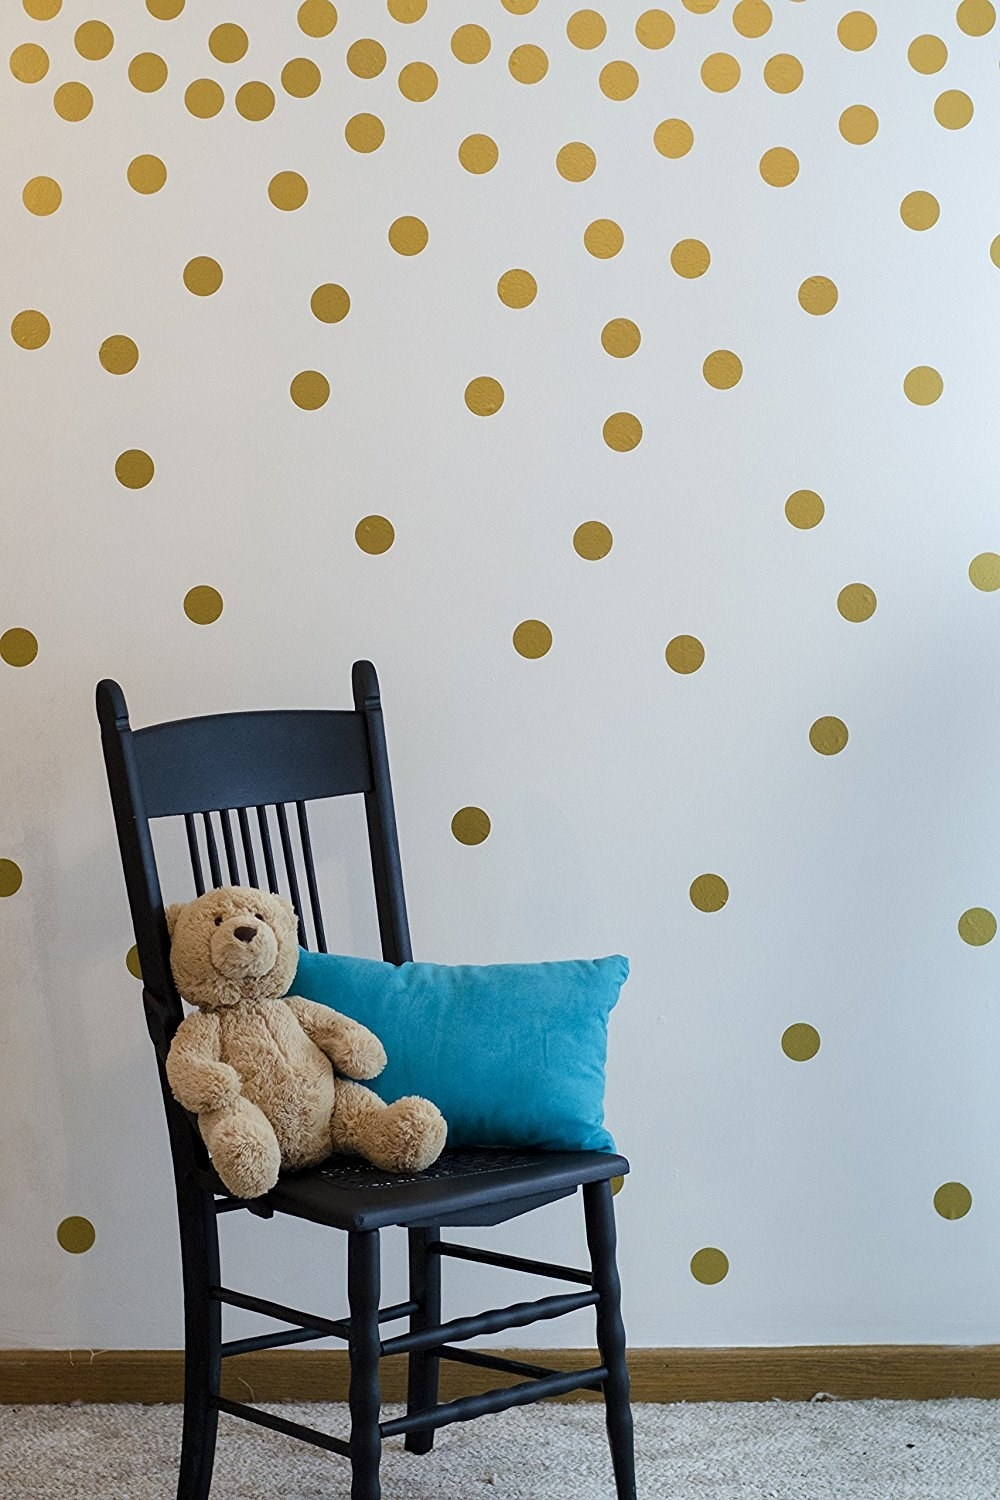 If The Apartment Still Feels Too Bare, Add Some Removable Vinyl Decals To  The Walls.